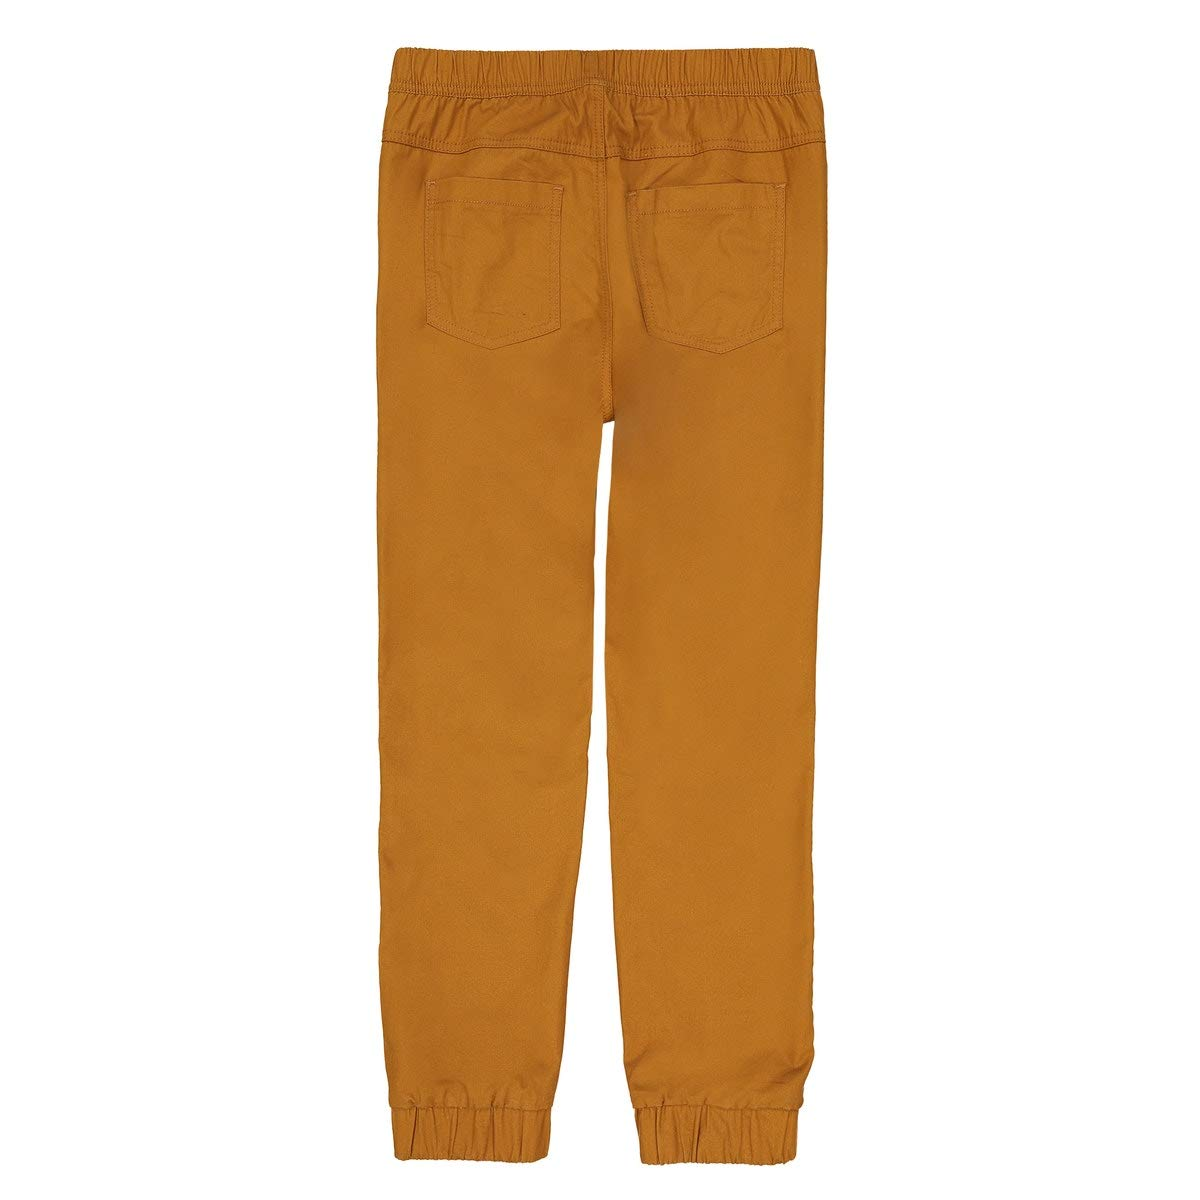 10-16 Years La Redoute Collections Canvas Joggers